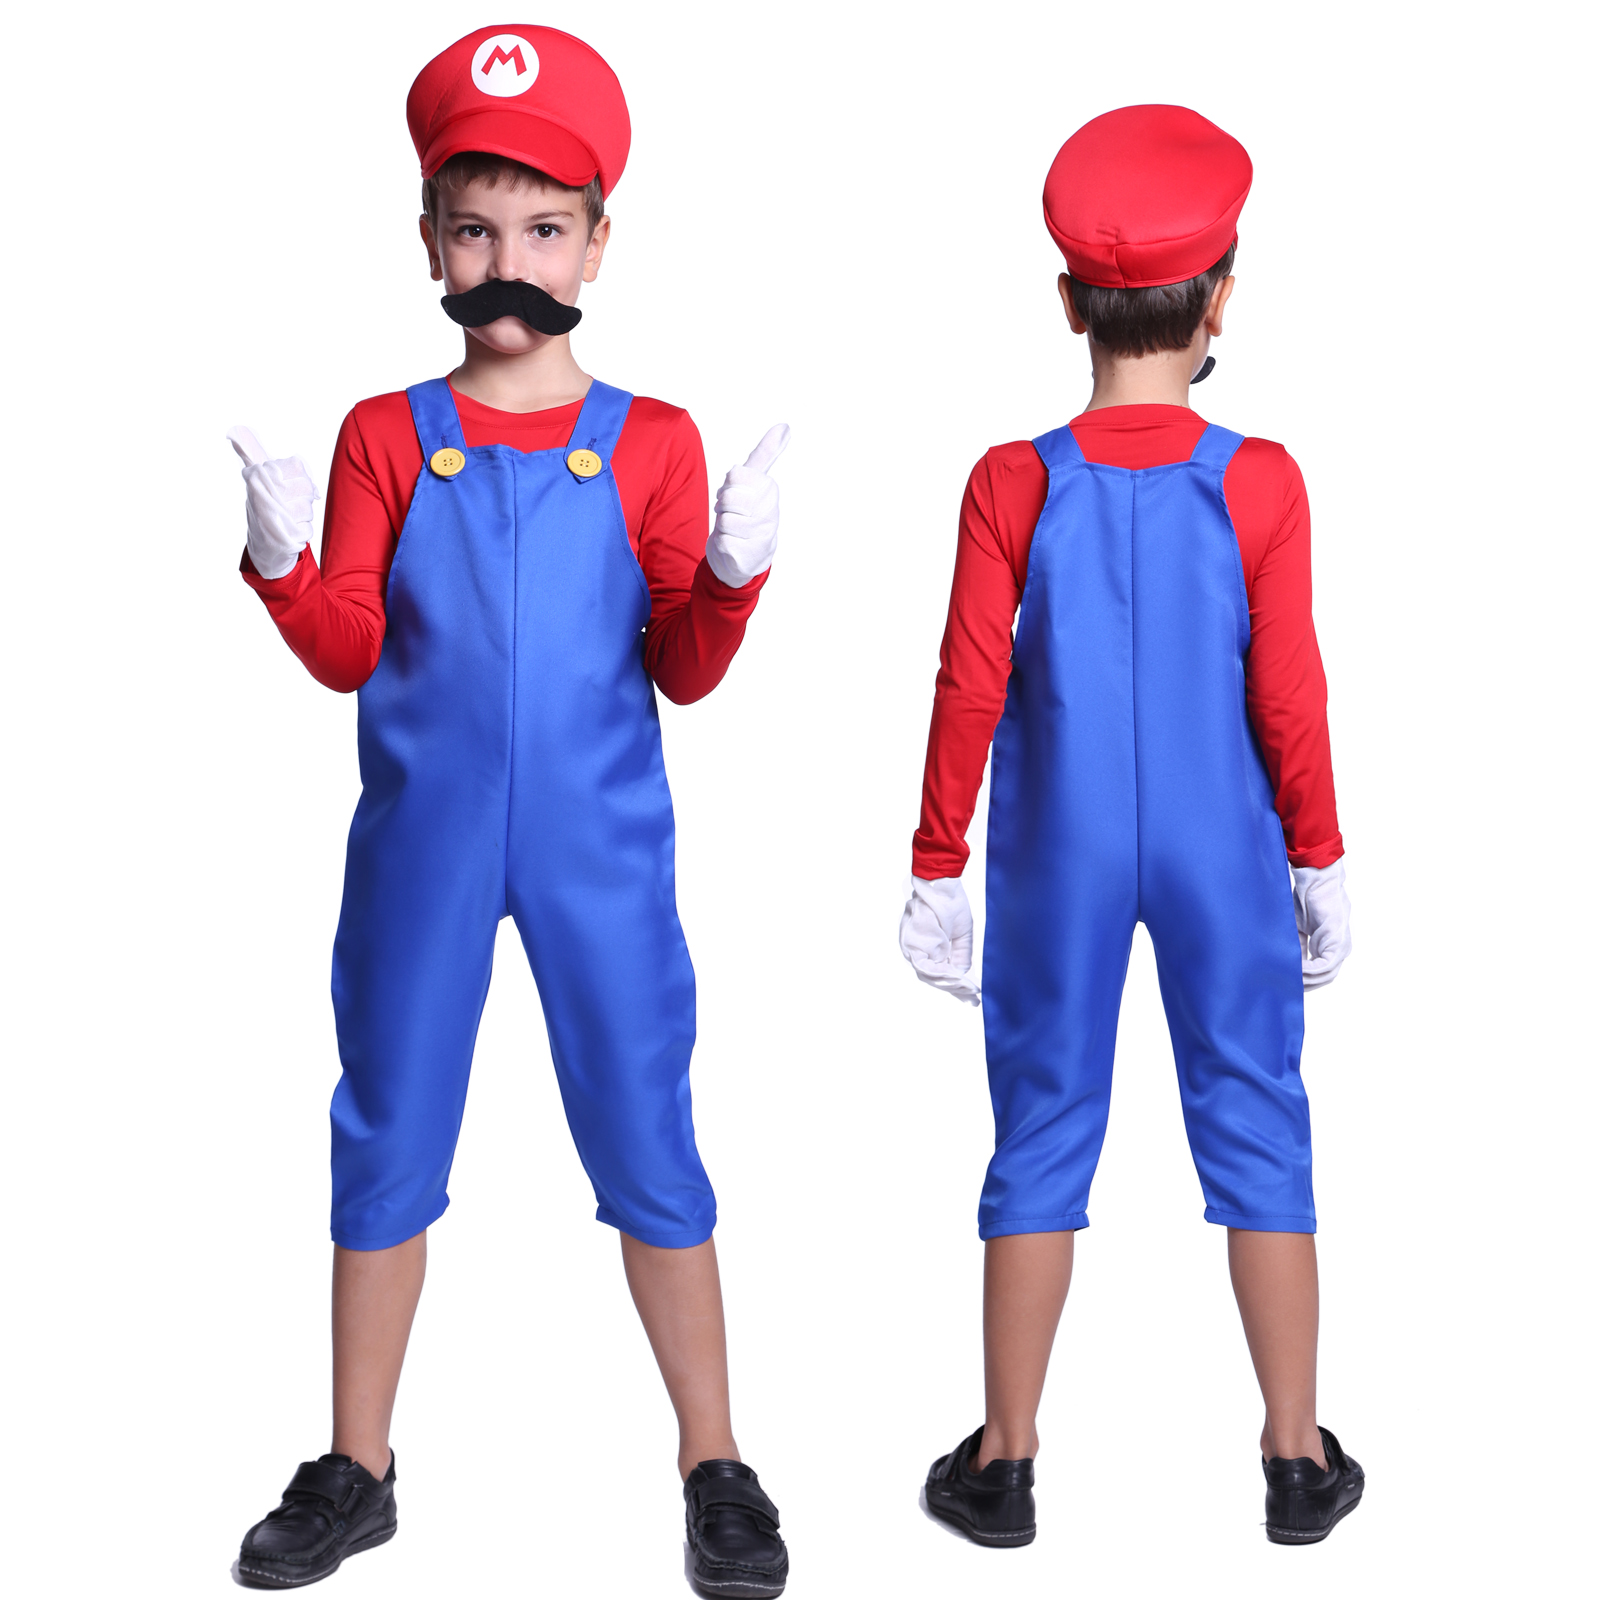 ... Picture 3 of 3  sc 1 st  eBay & Kids Super Mario Costume Teen Boys Clothes Fancy Dress Party ...